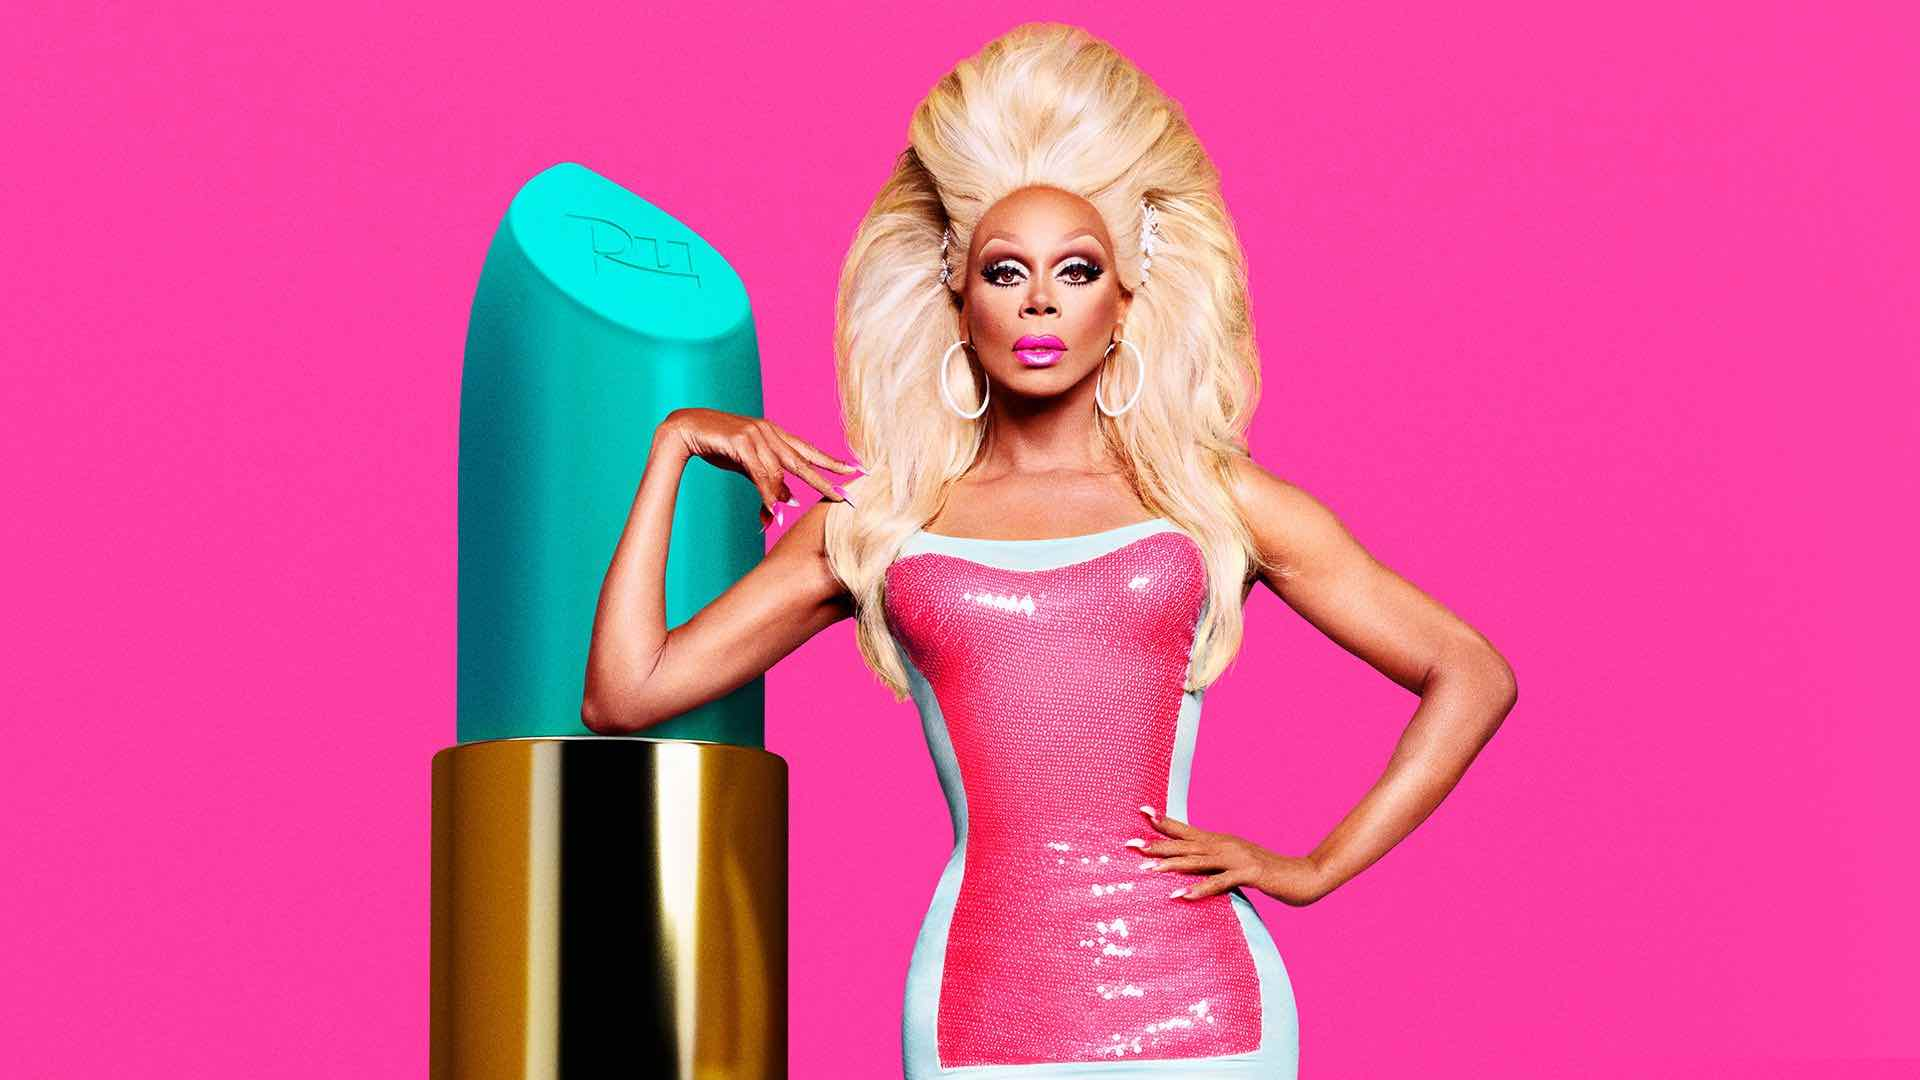 Because Pride month is just over, we're taking a look back at the last eleven seasons of 'RuPaul's Drag Race' and the queens who've come out on top.